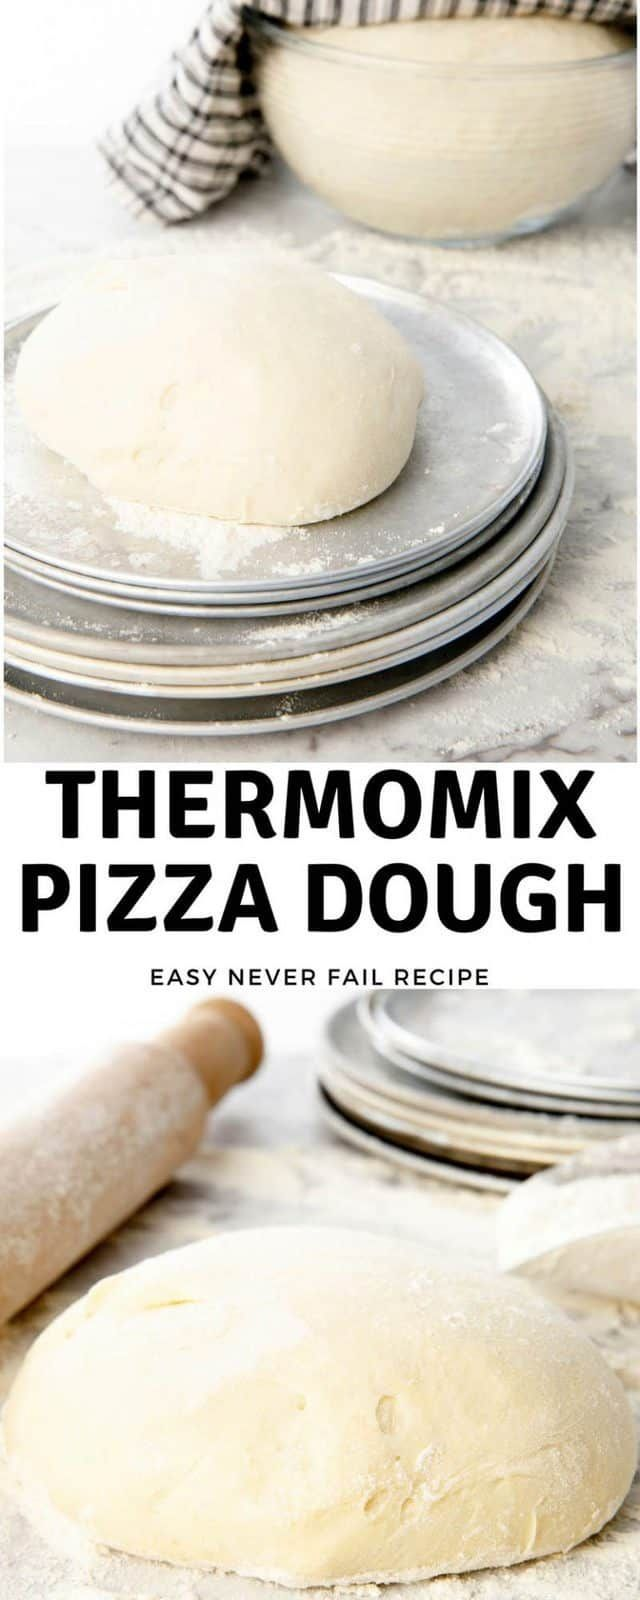 Thermomix Pizza Dough is part of pizza - A fuss free, never fail, pizza dough